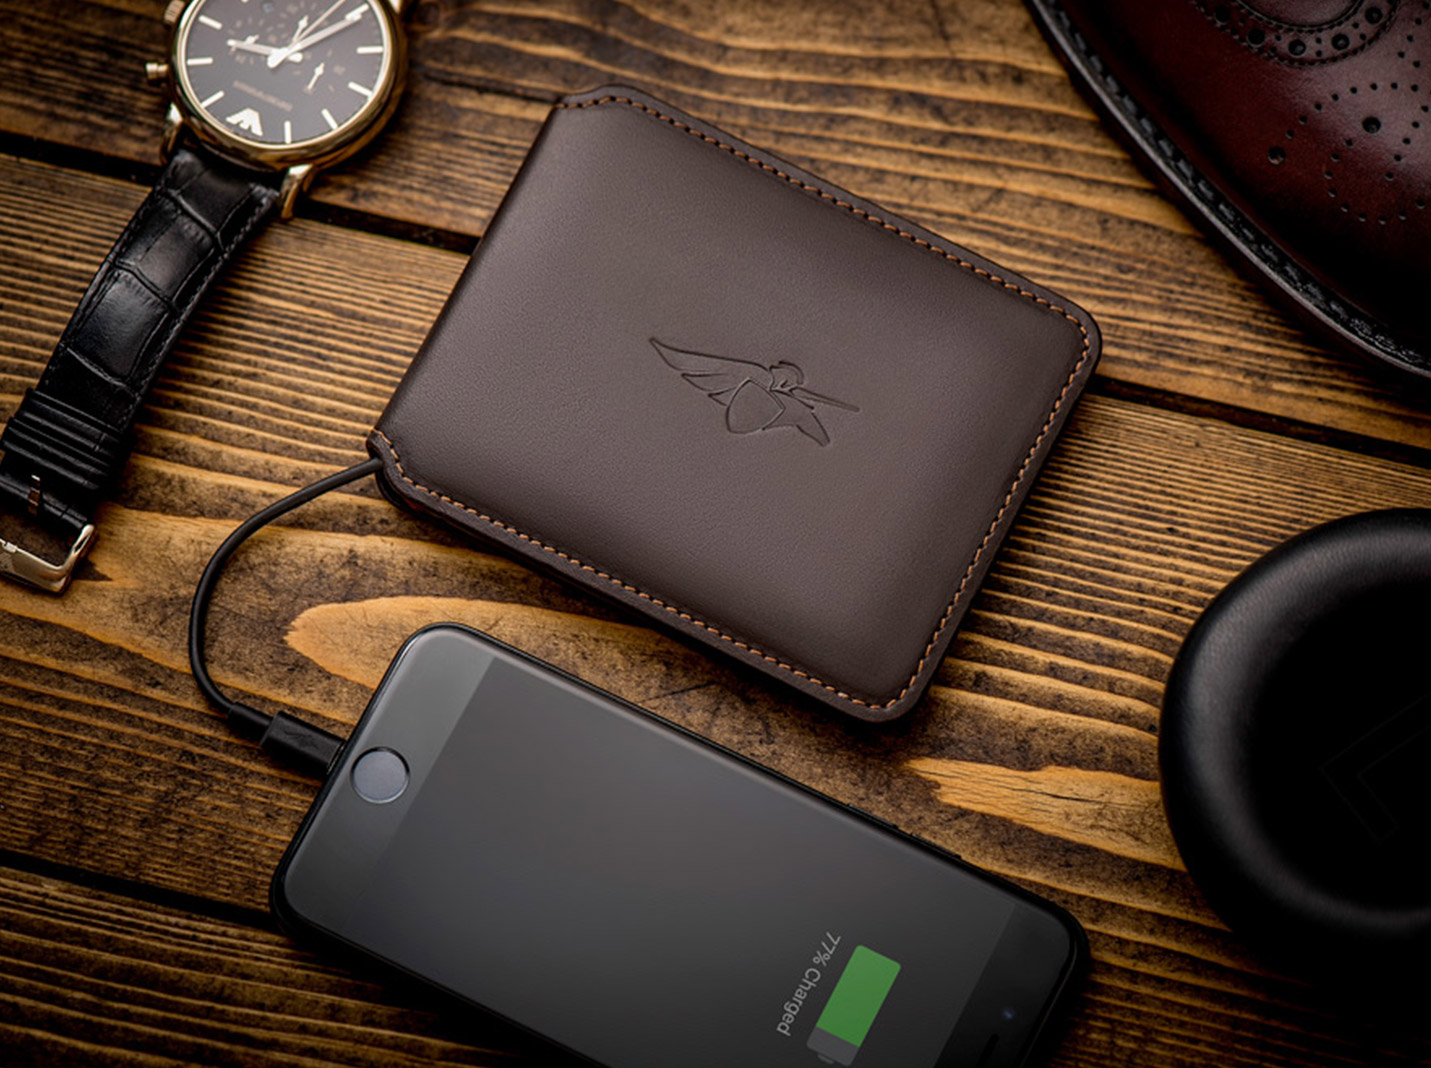 Volterman Smart Wallet - Crowdfunding campaigns